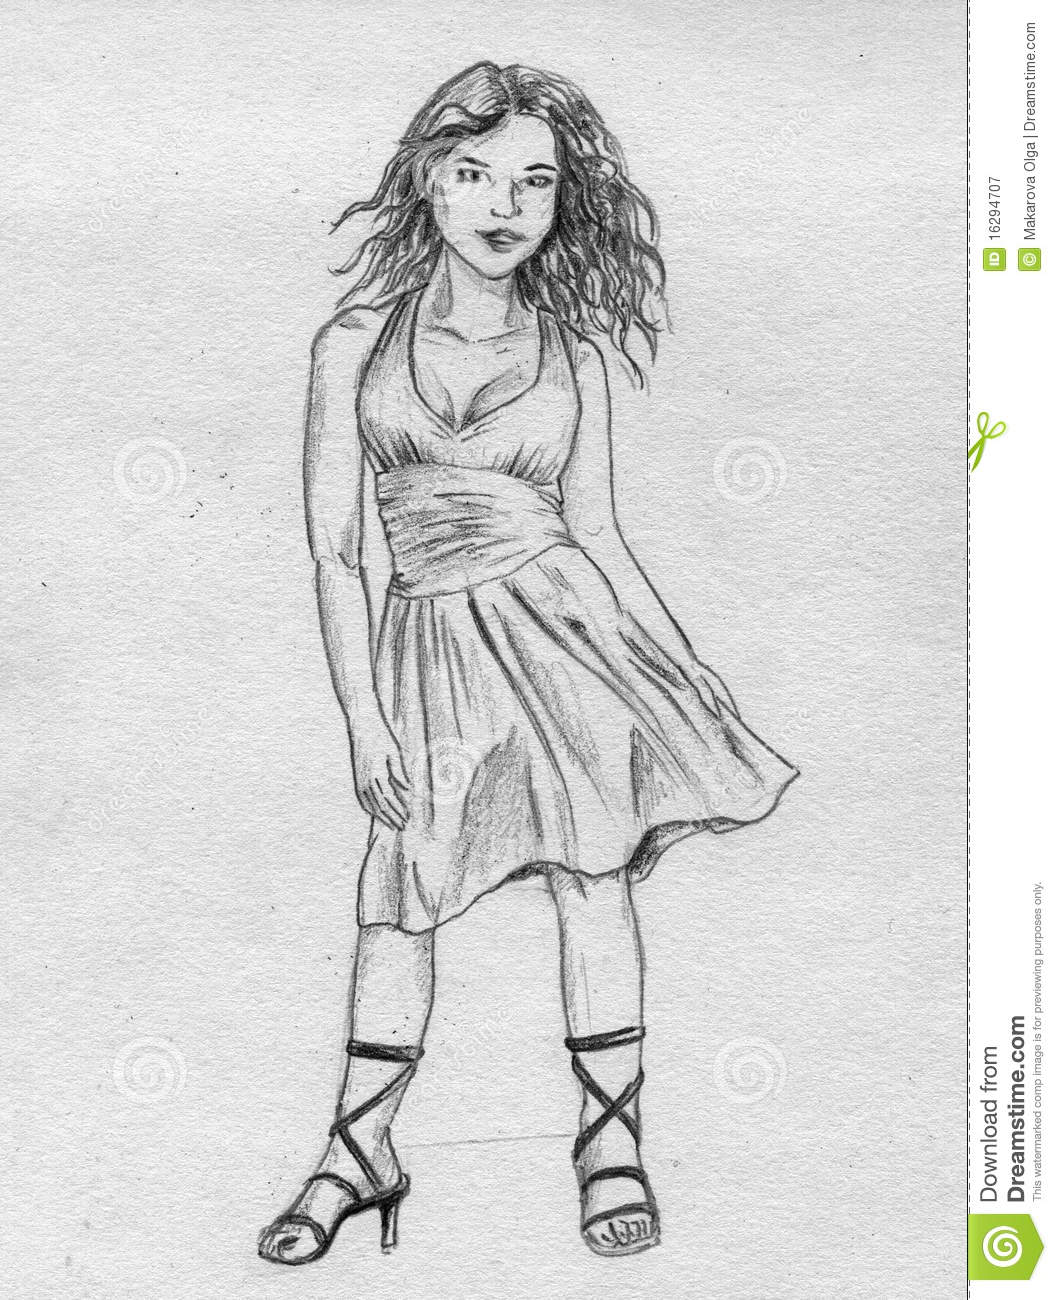 Fancy Girl Sketch Royalty Free Stock Photography Image